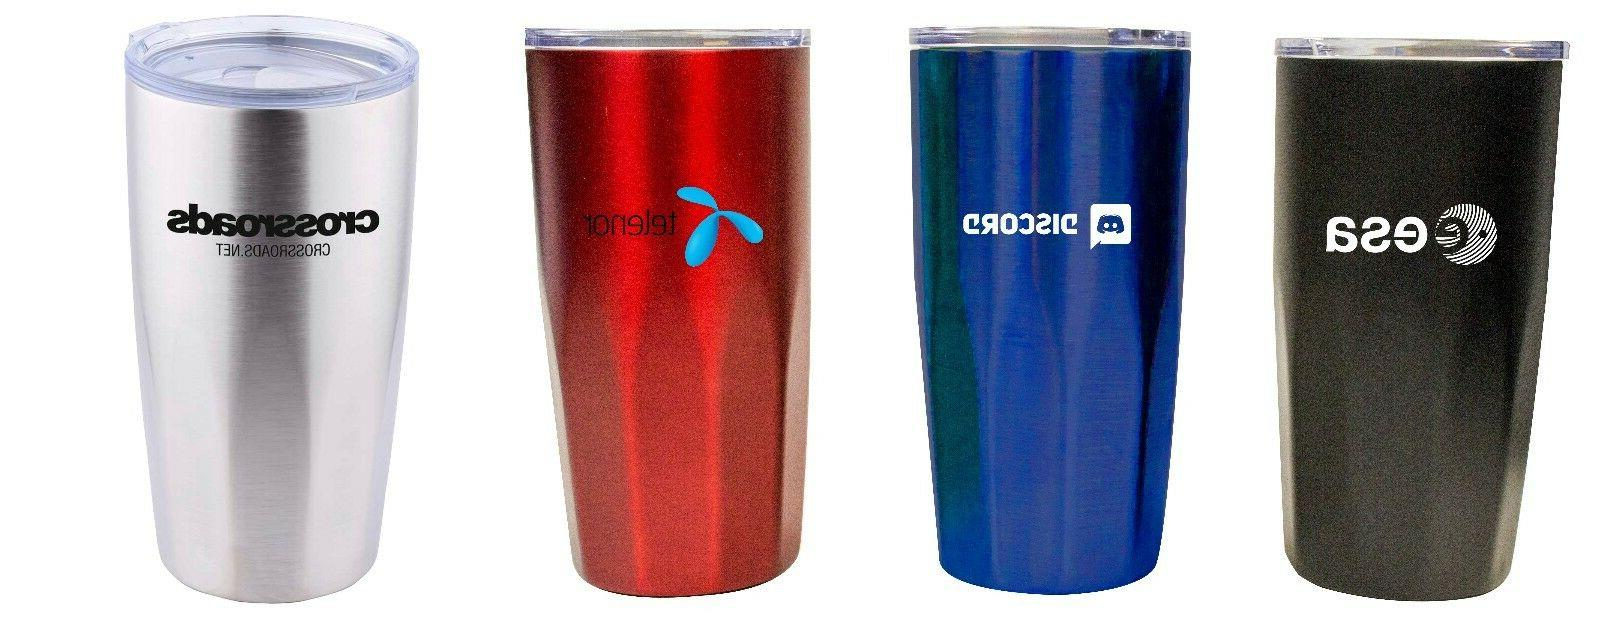 20oz stainless steel double wall tumbler keep